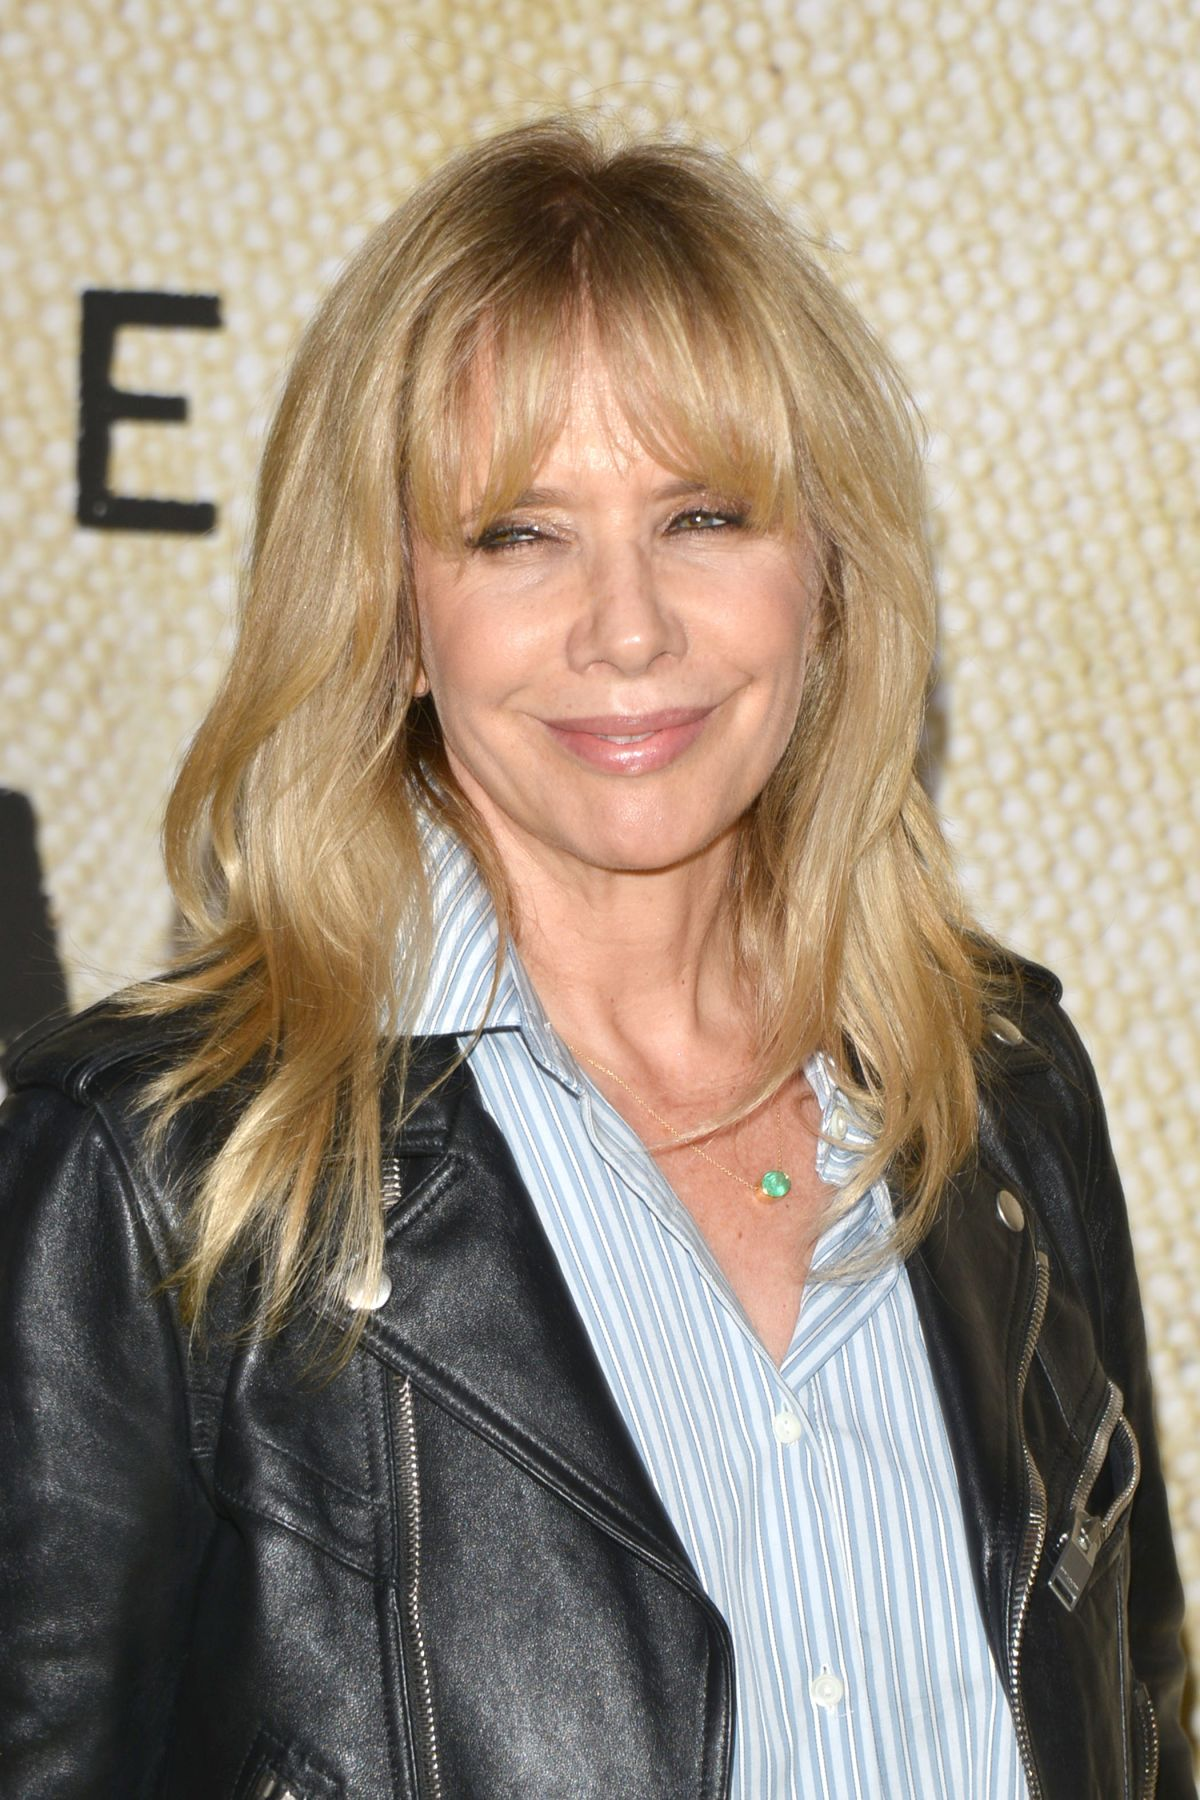 Rosanna Arquette nude (79 photos), Tits, Leaked, Twitter, braless 2006